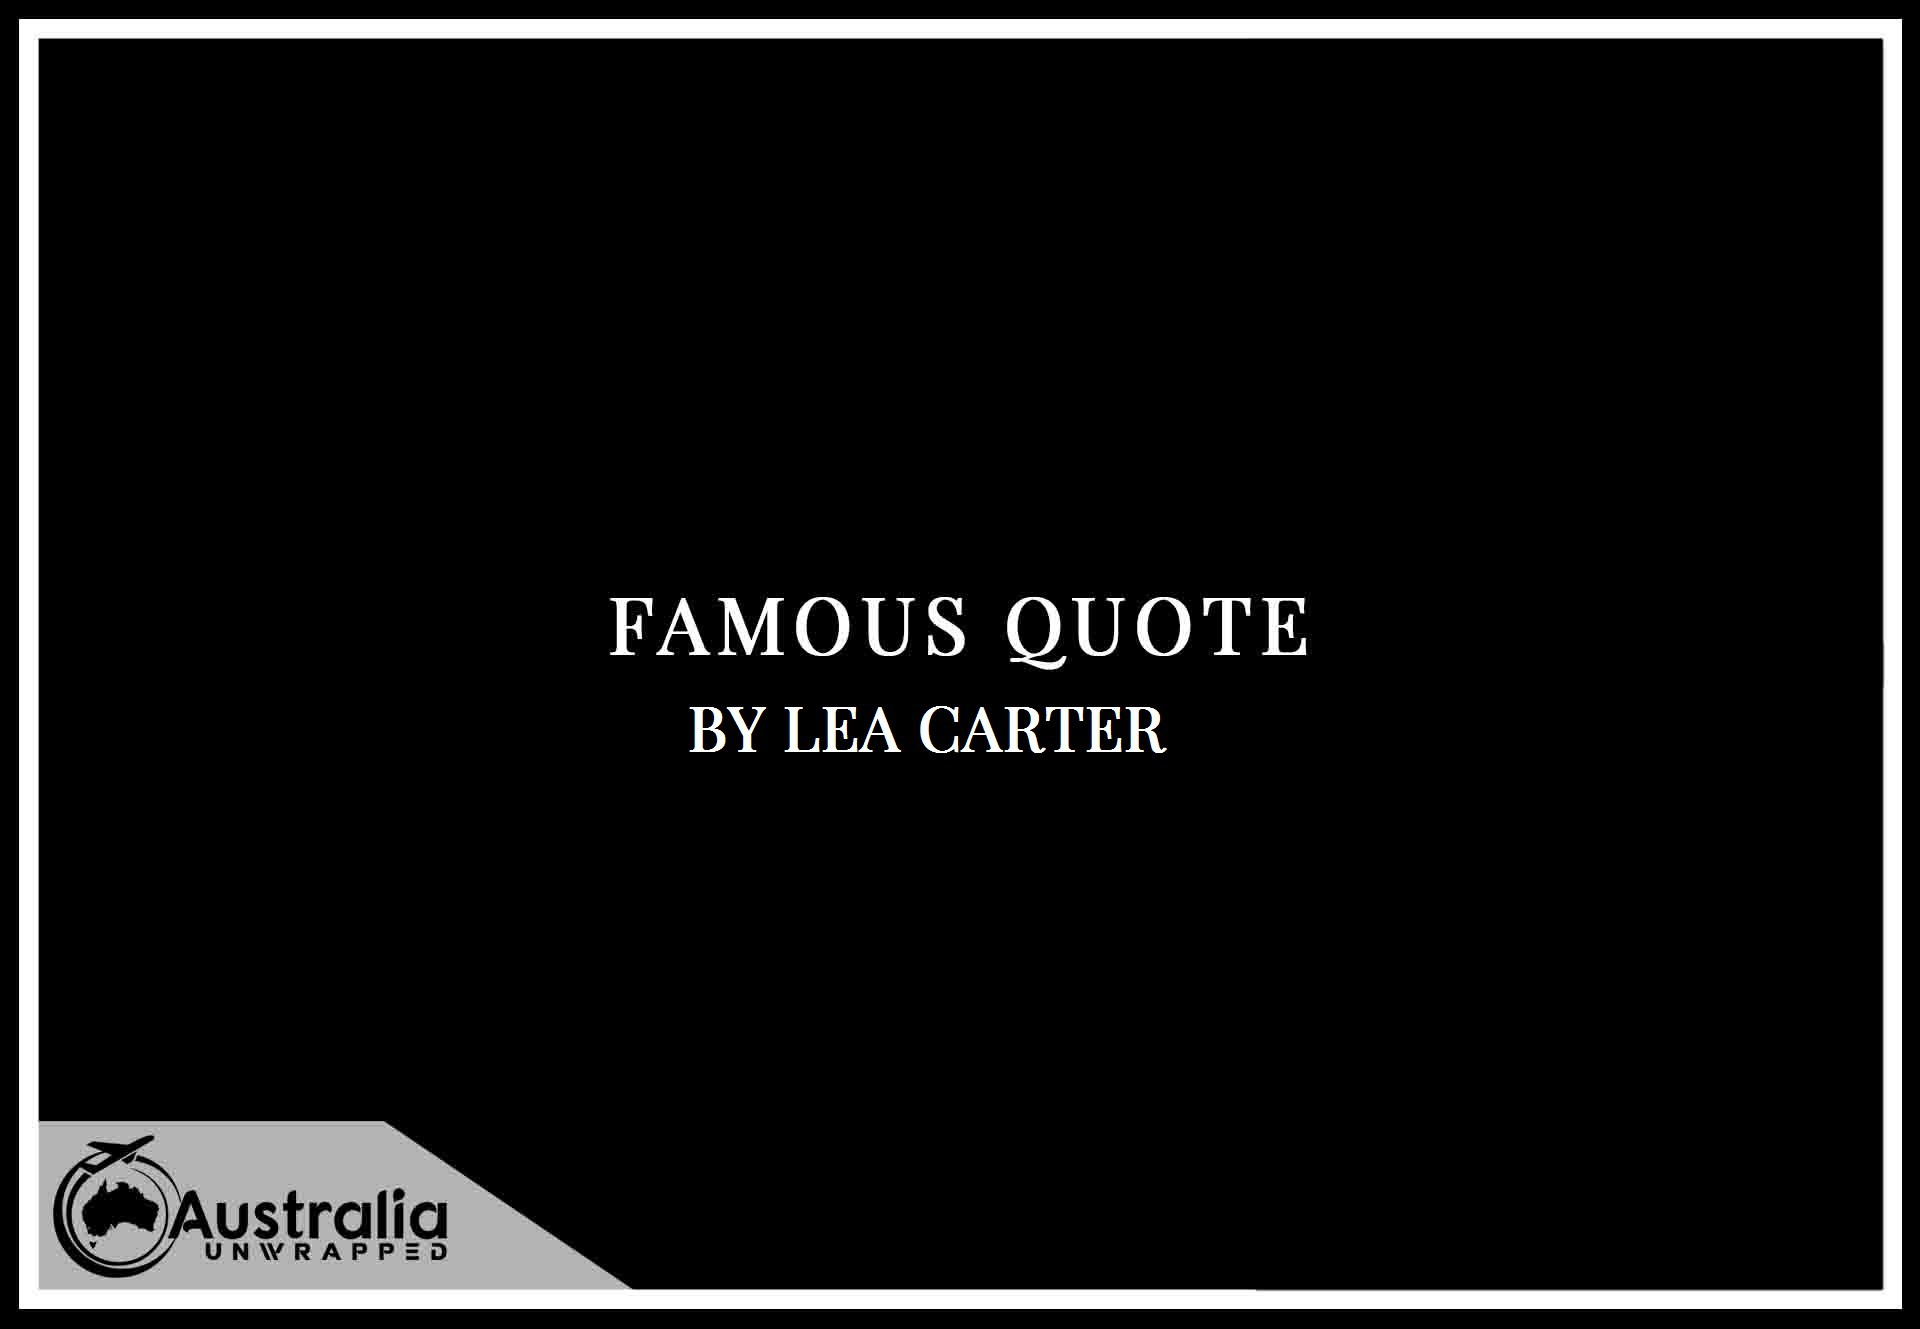 Lea Carter's Top 1 Popular and Famous Quotes